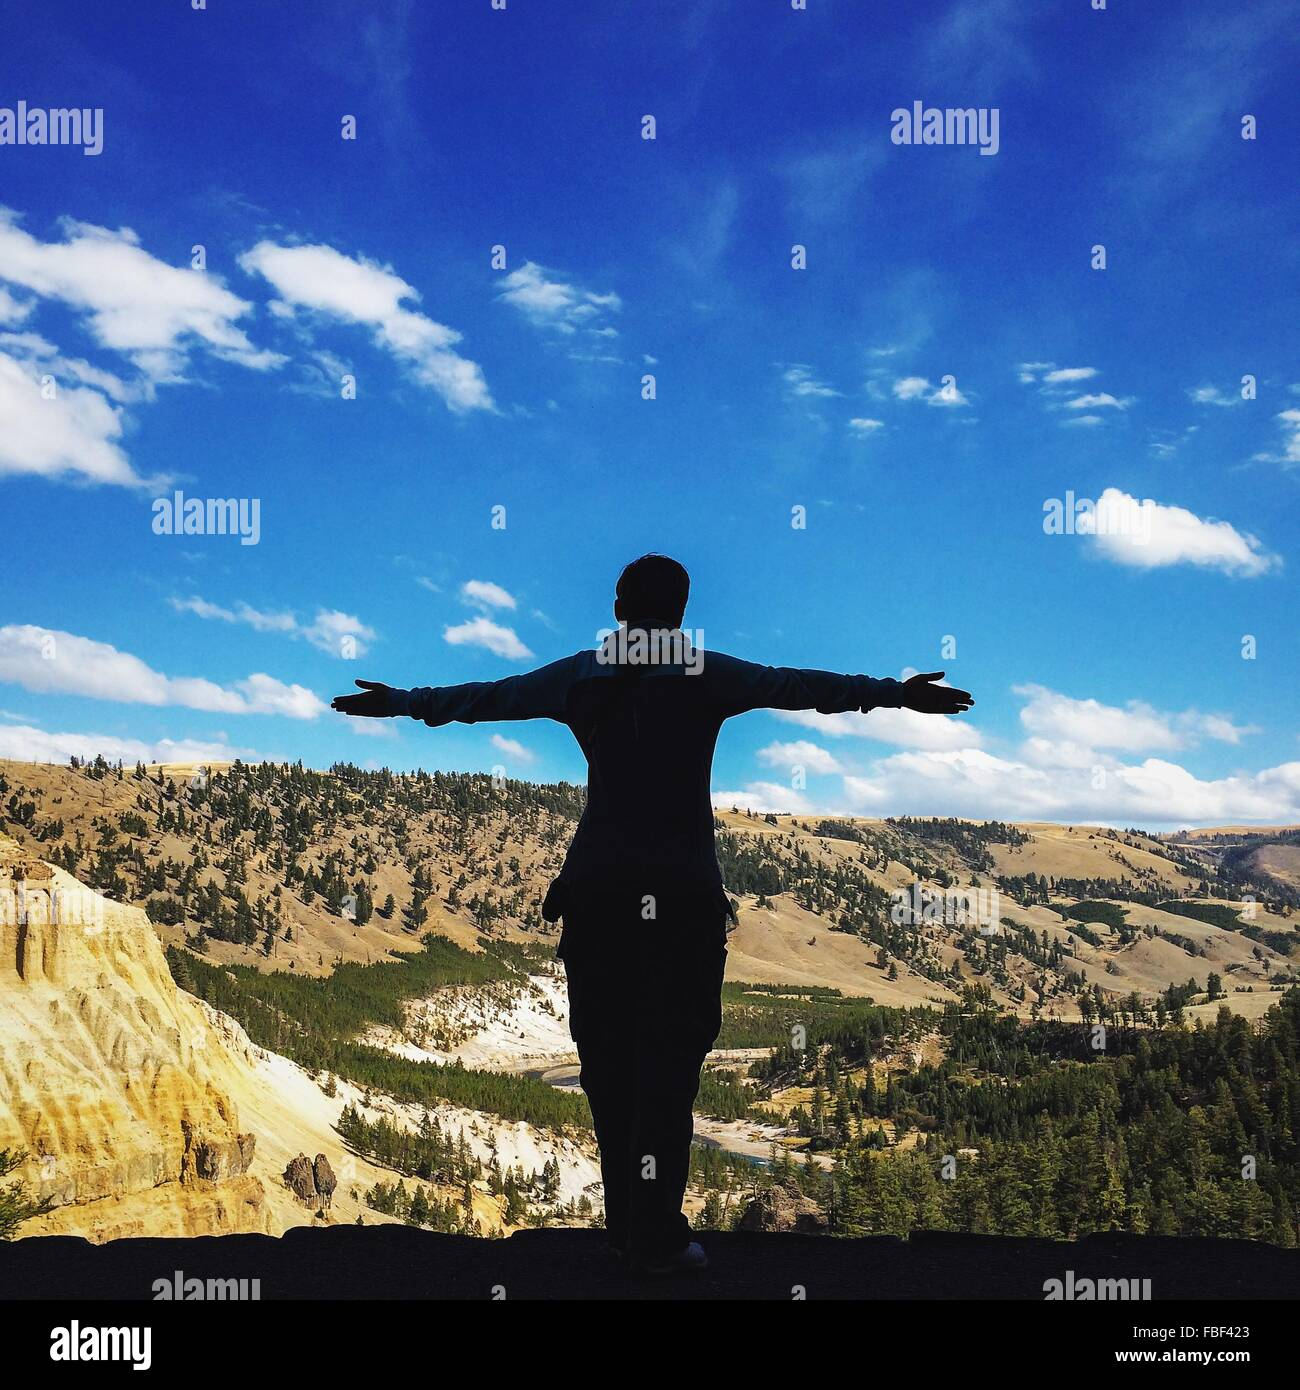 Rear View Of Man Standing With Arms Outstretched By Mountains Against Sky - Stock Image